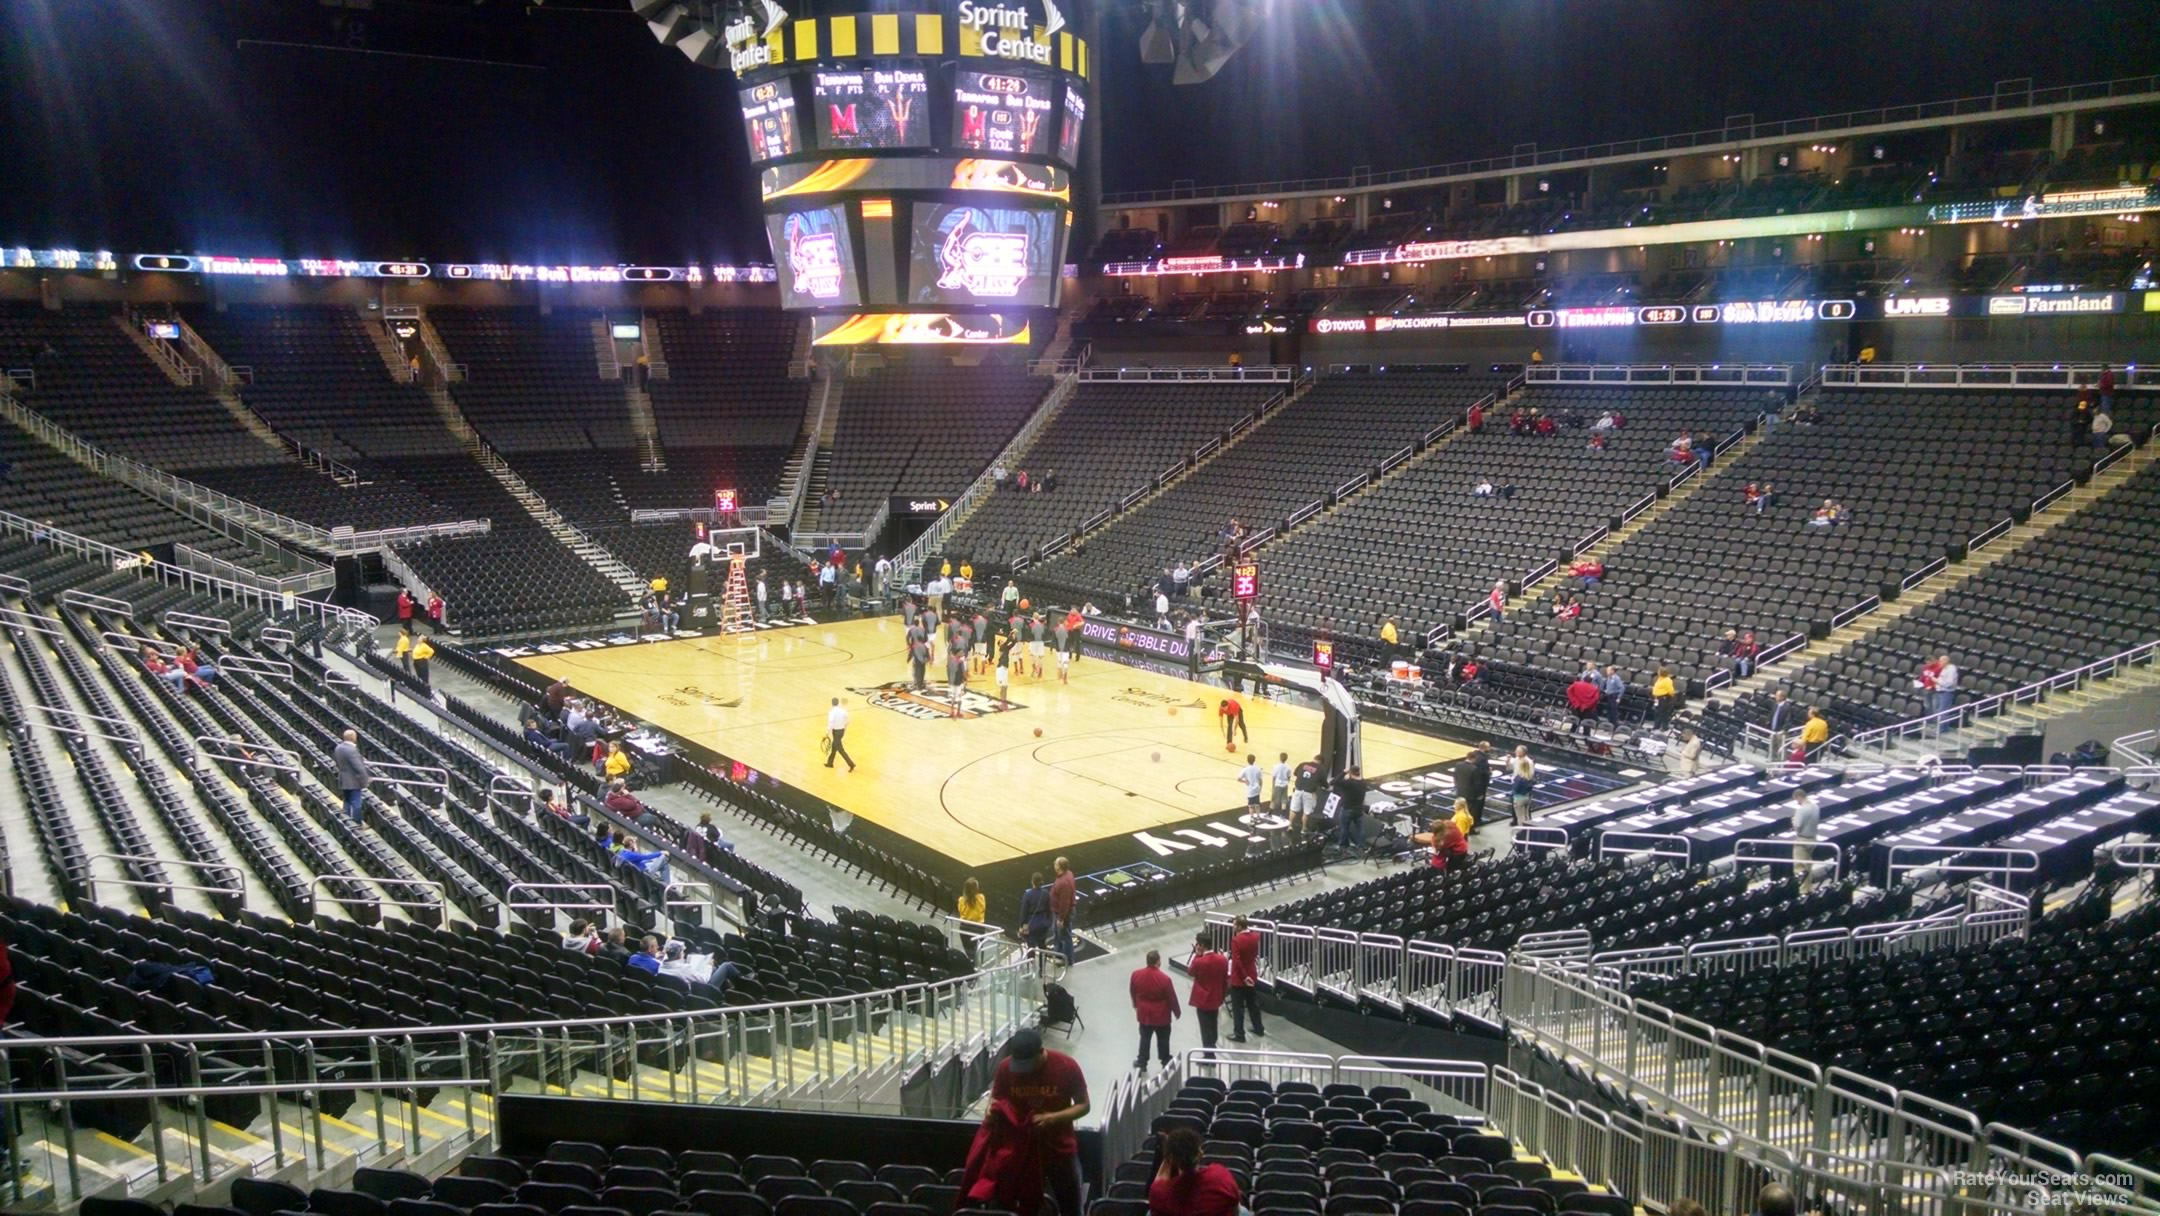 Sprint Center Section 114 Basketball Seating